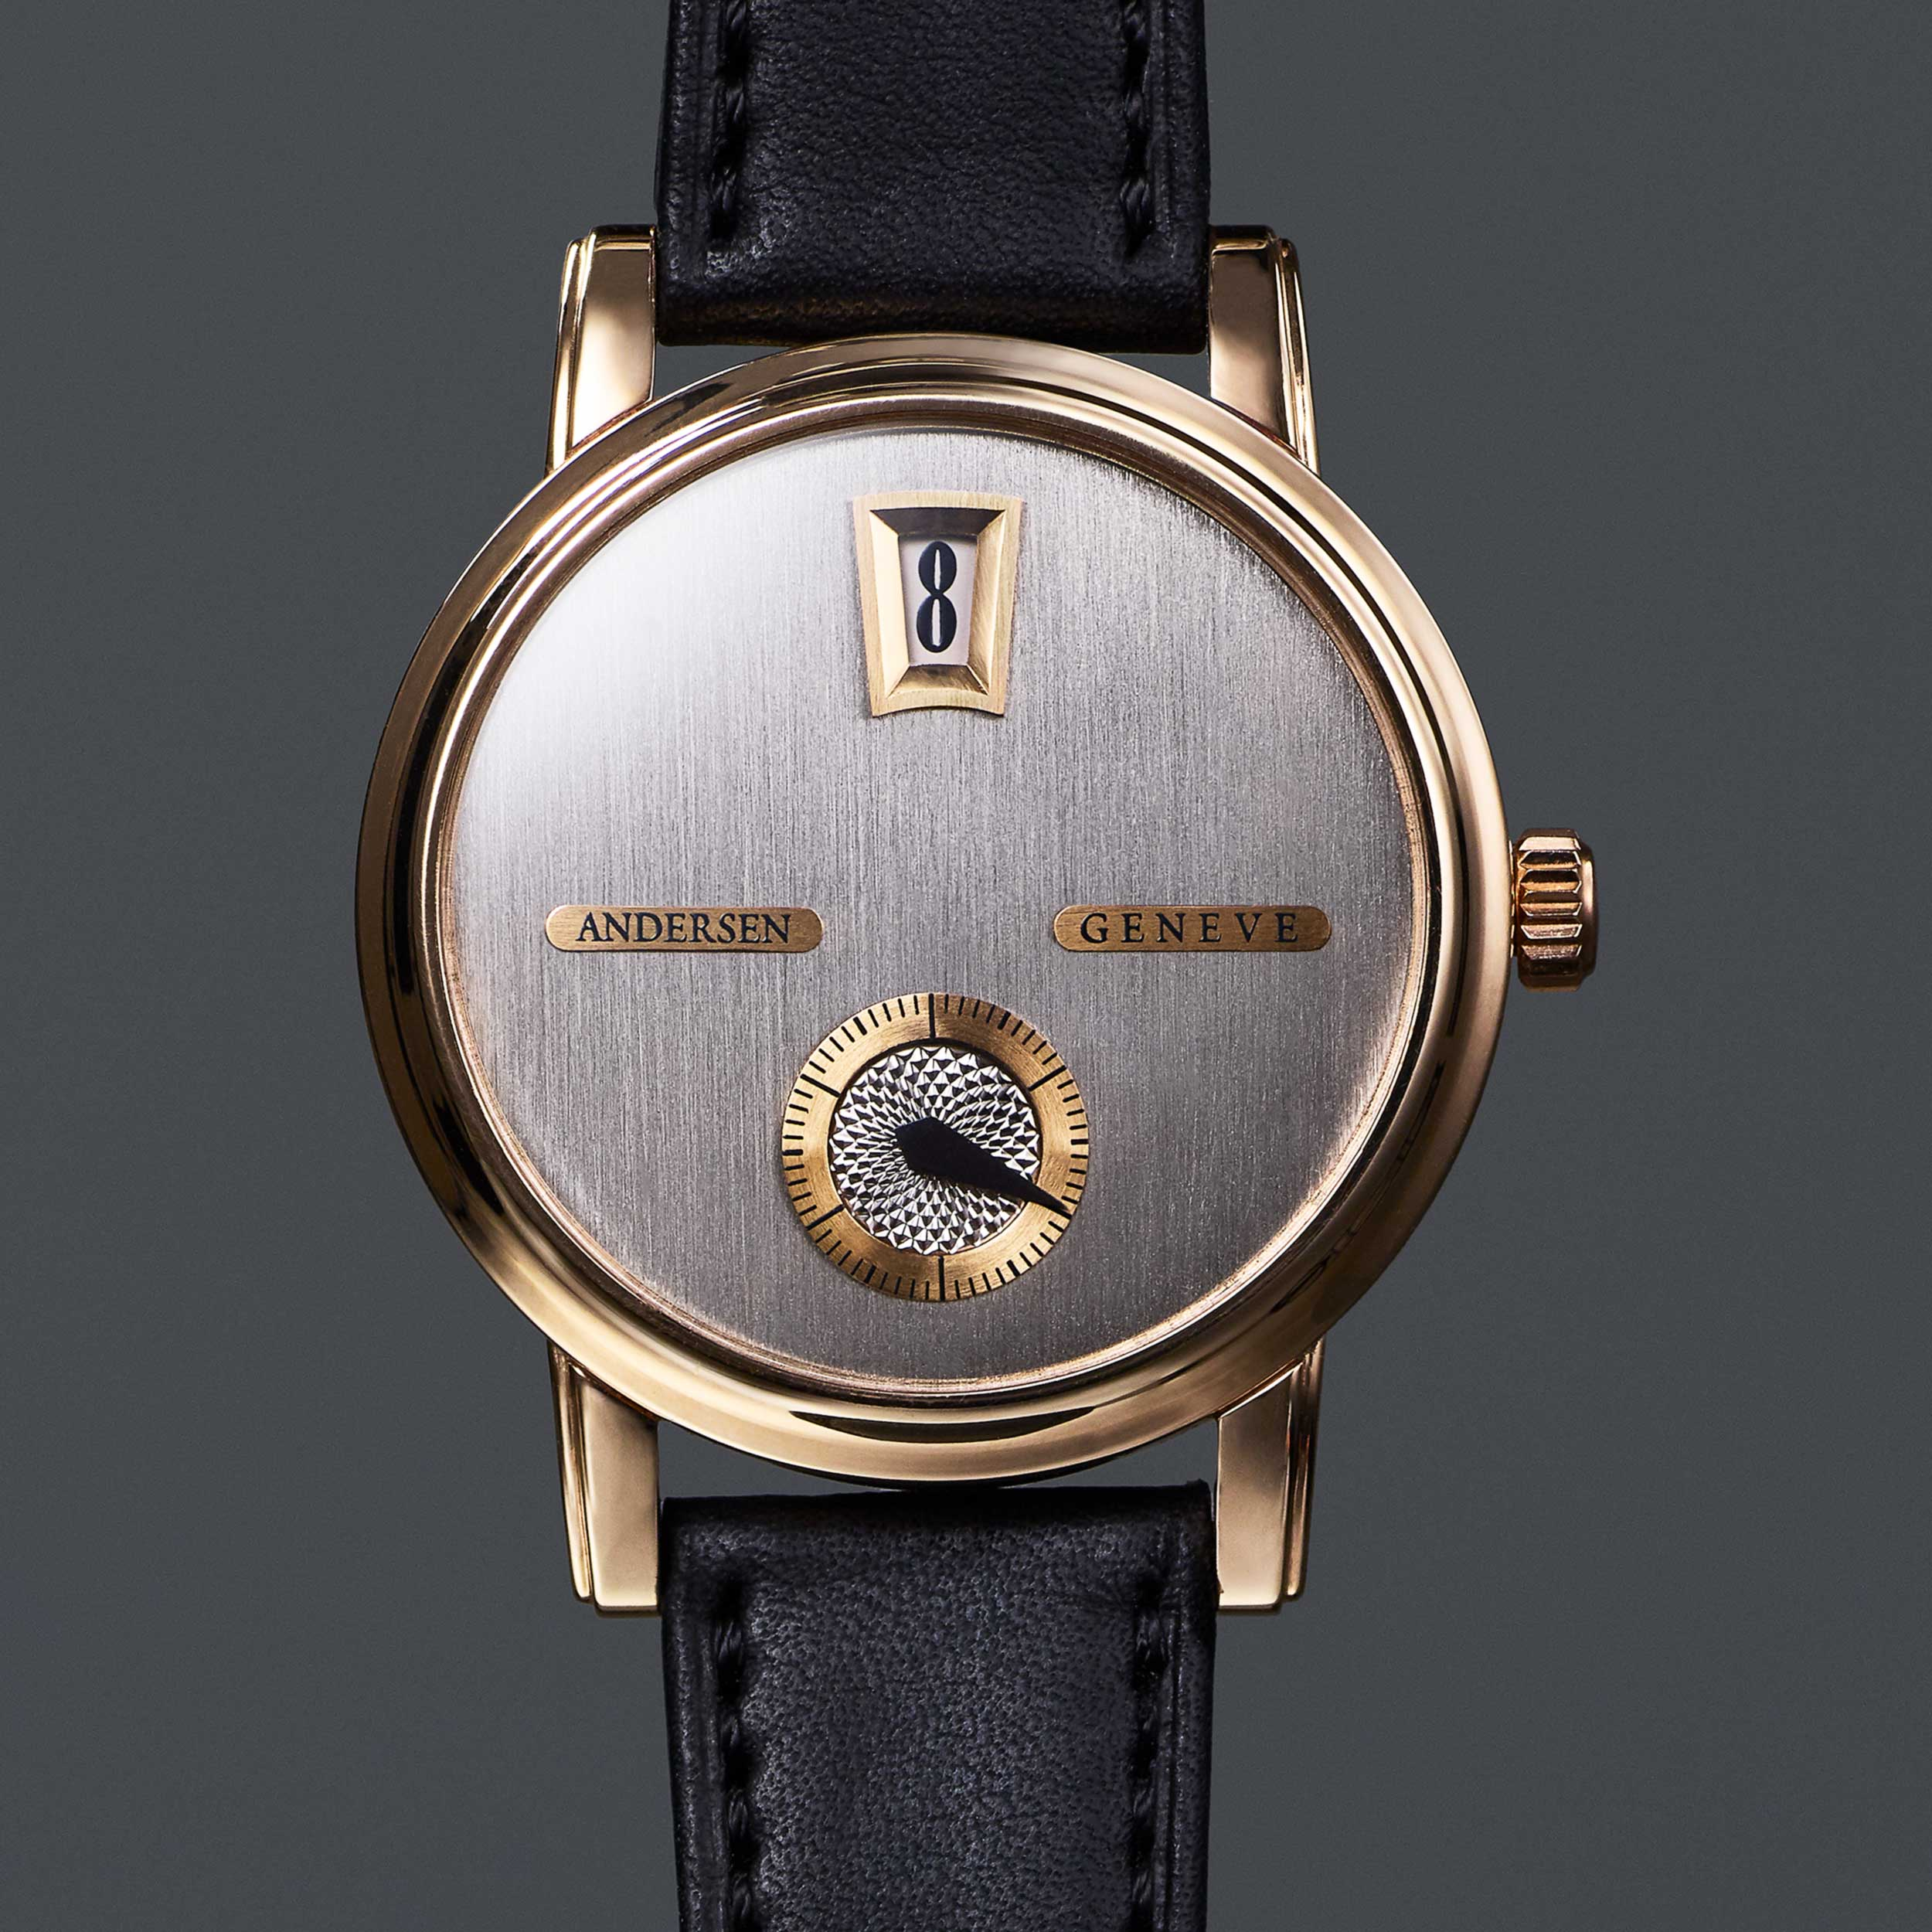 After  The final bespoke watch with Jumping hour complication by Andersen Geneve